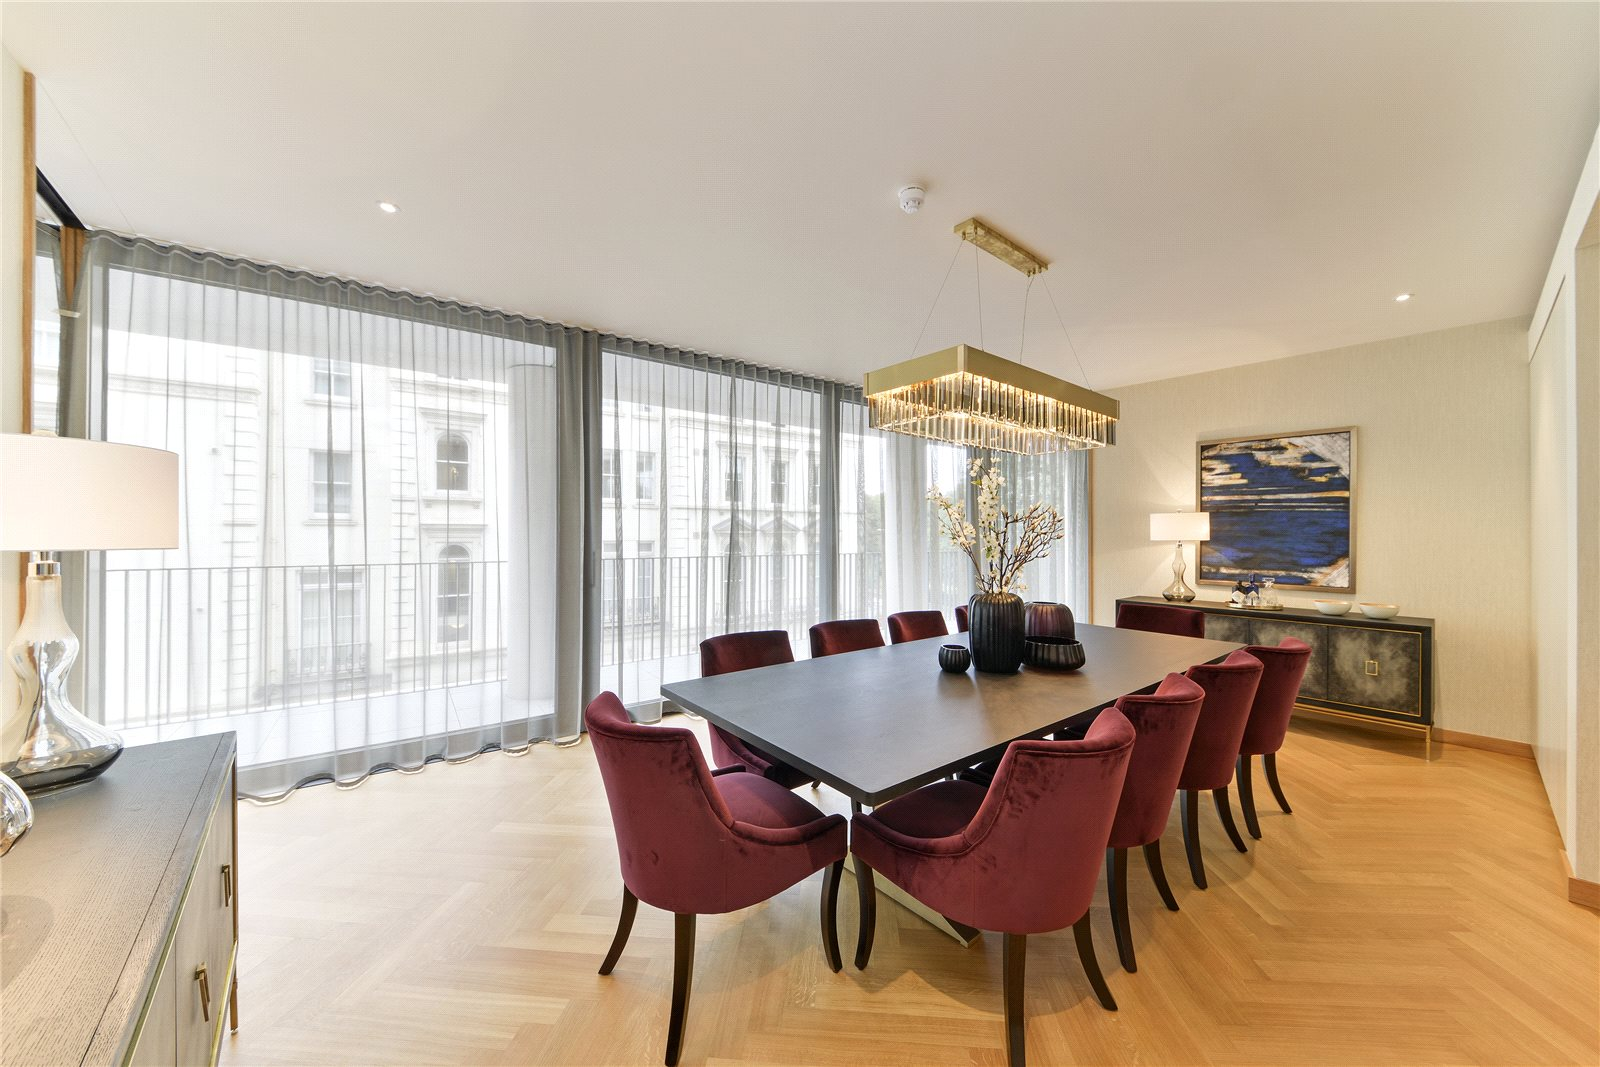 Additional photo for property listing at One Kensington Gardens, Kensington Road, London W8, W8 England